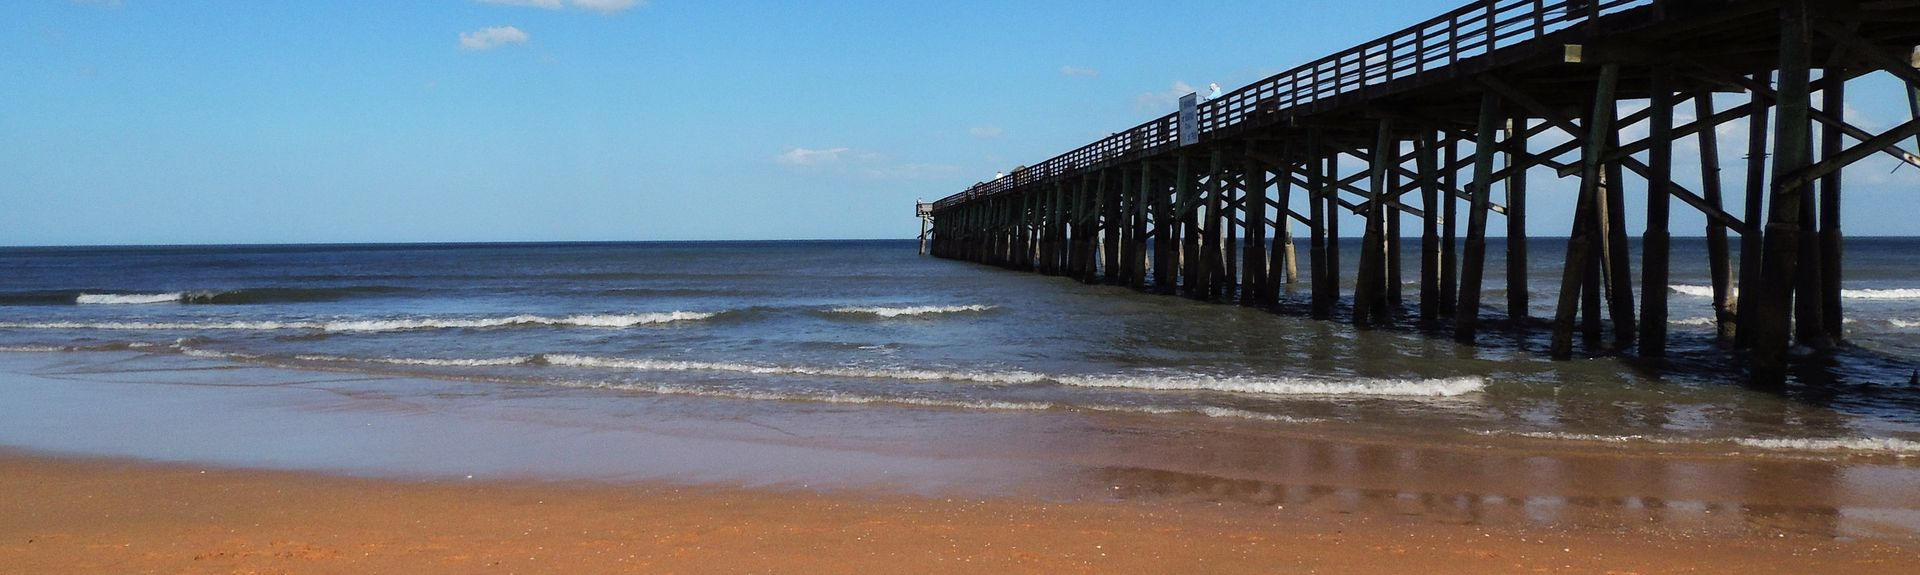 Flagler Beach, Florida, United States of America